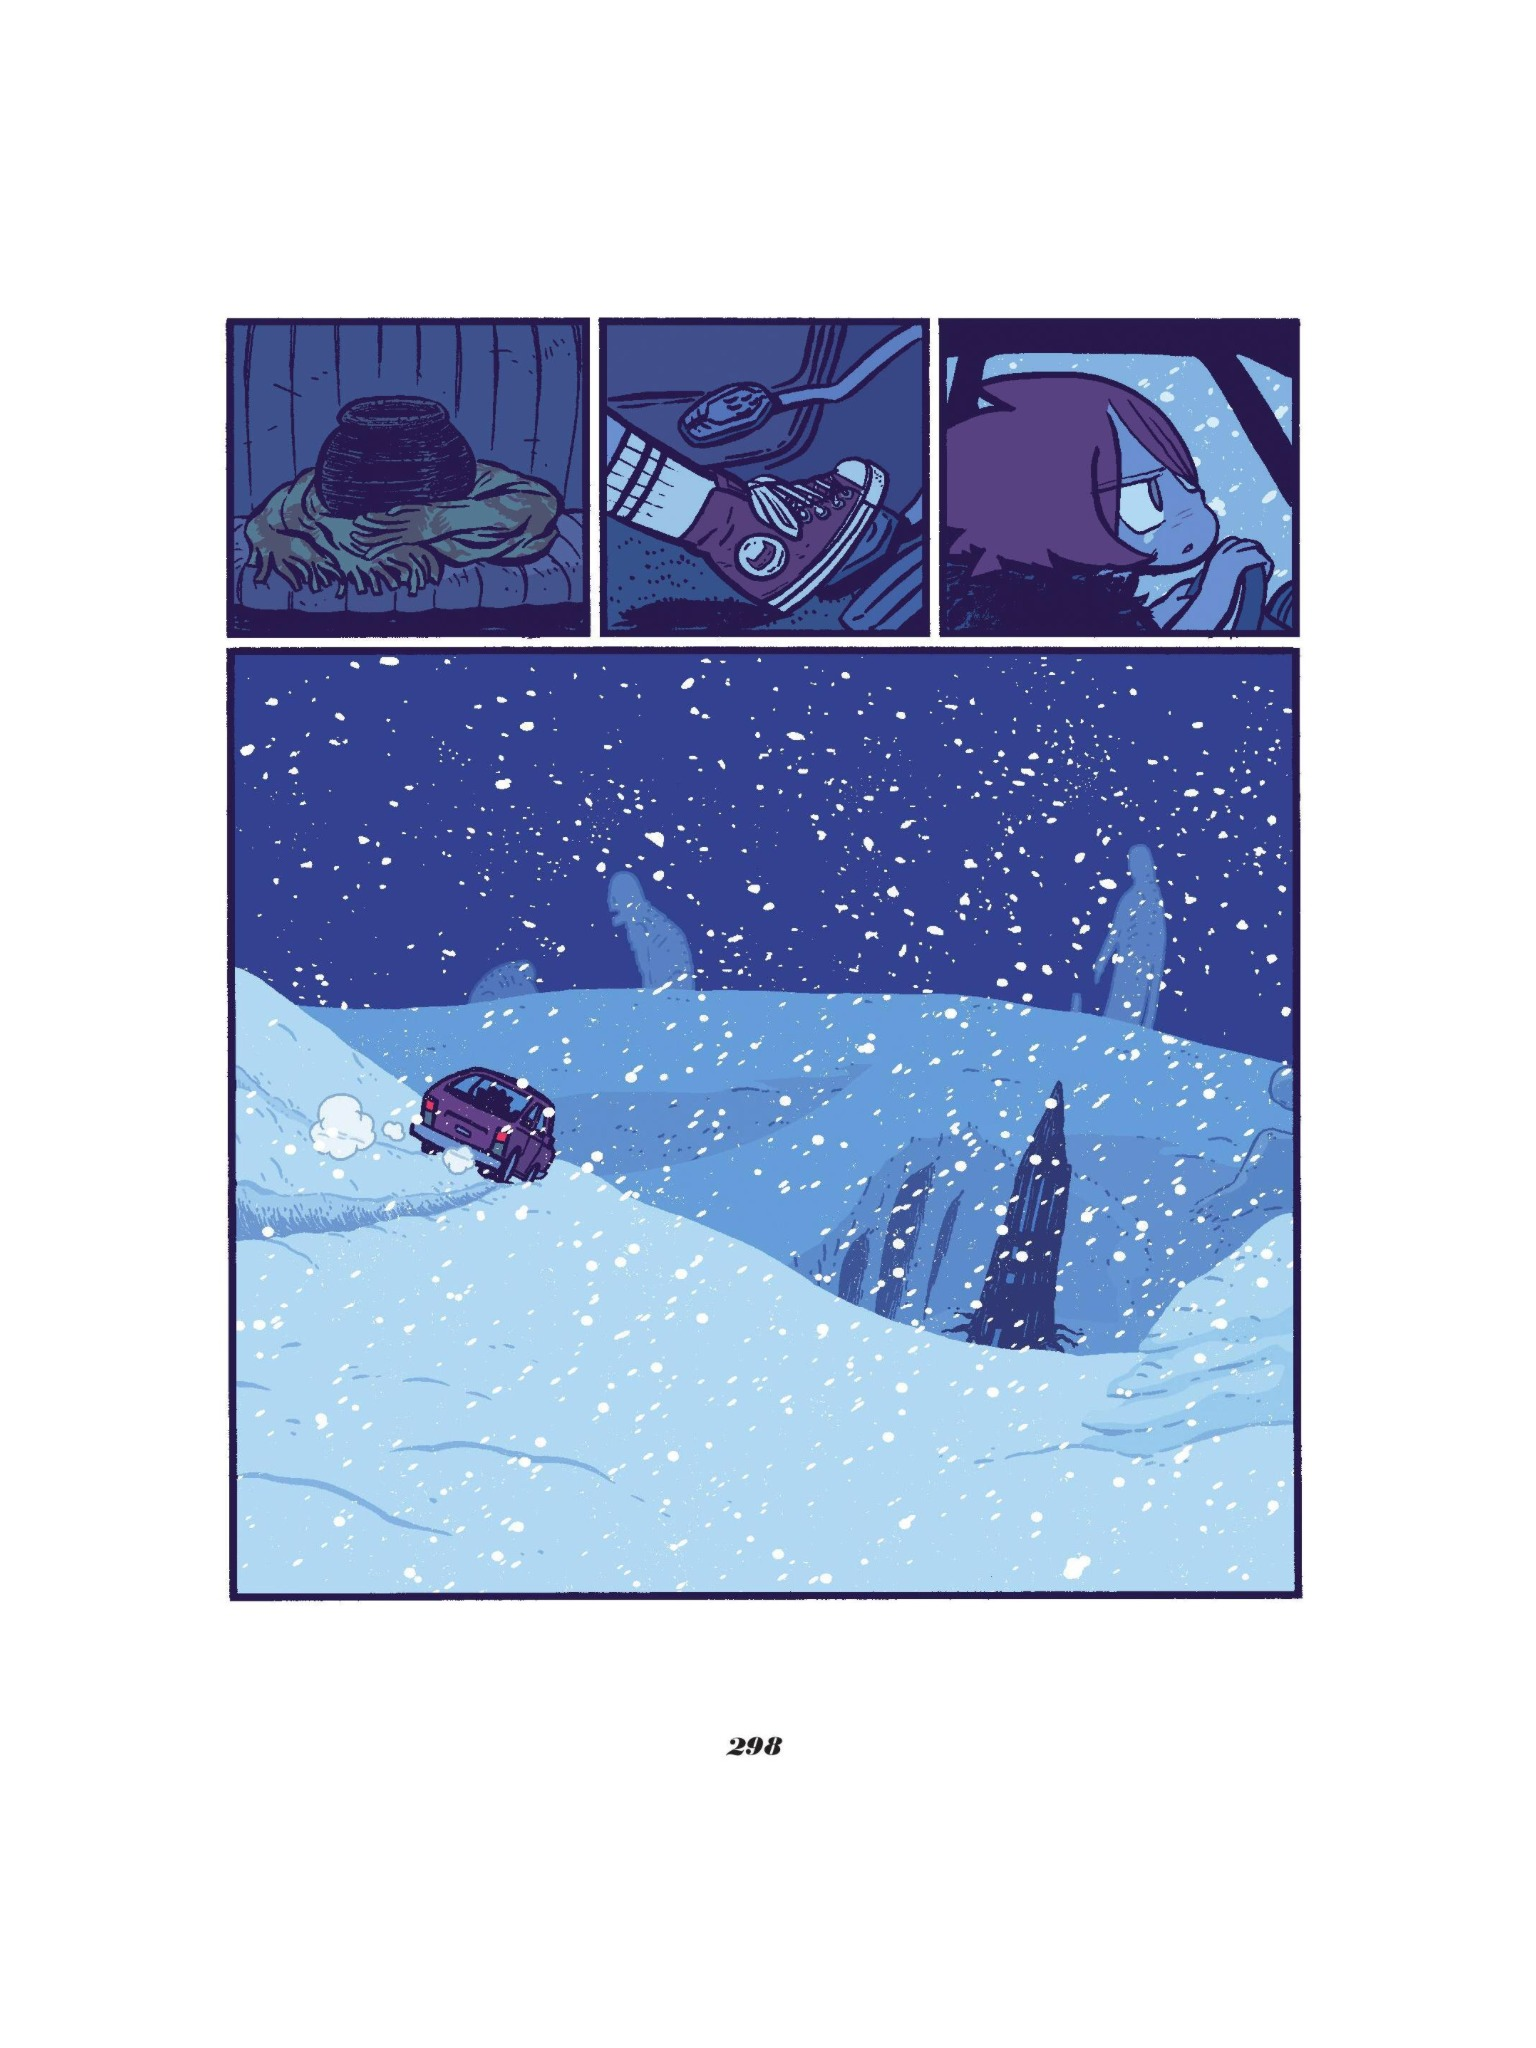 Read online Seconds comic -  Issue # Full - 298